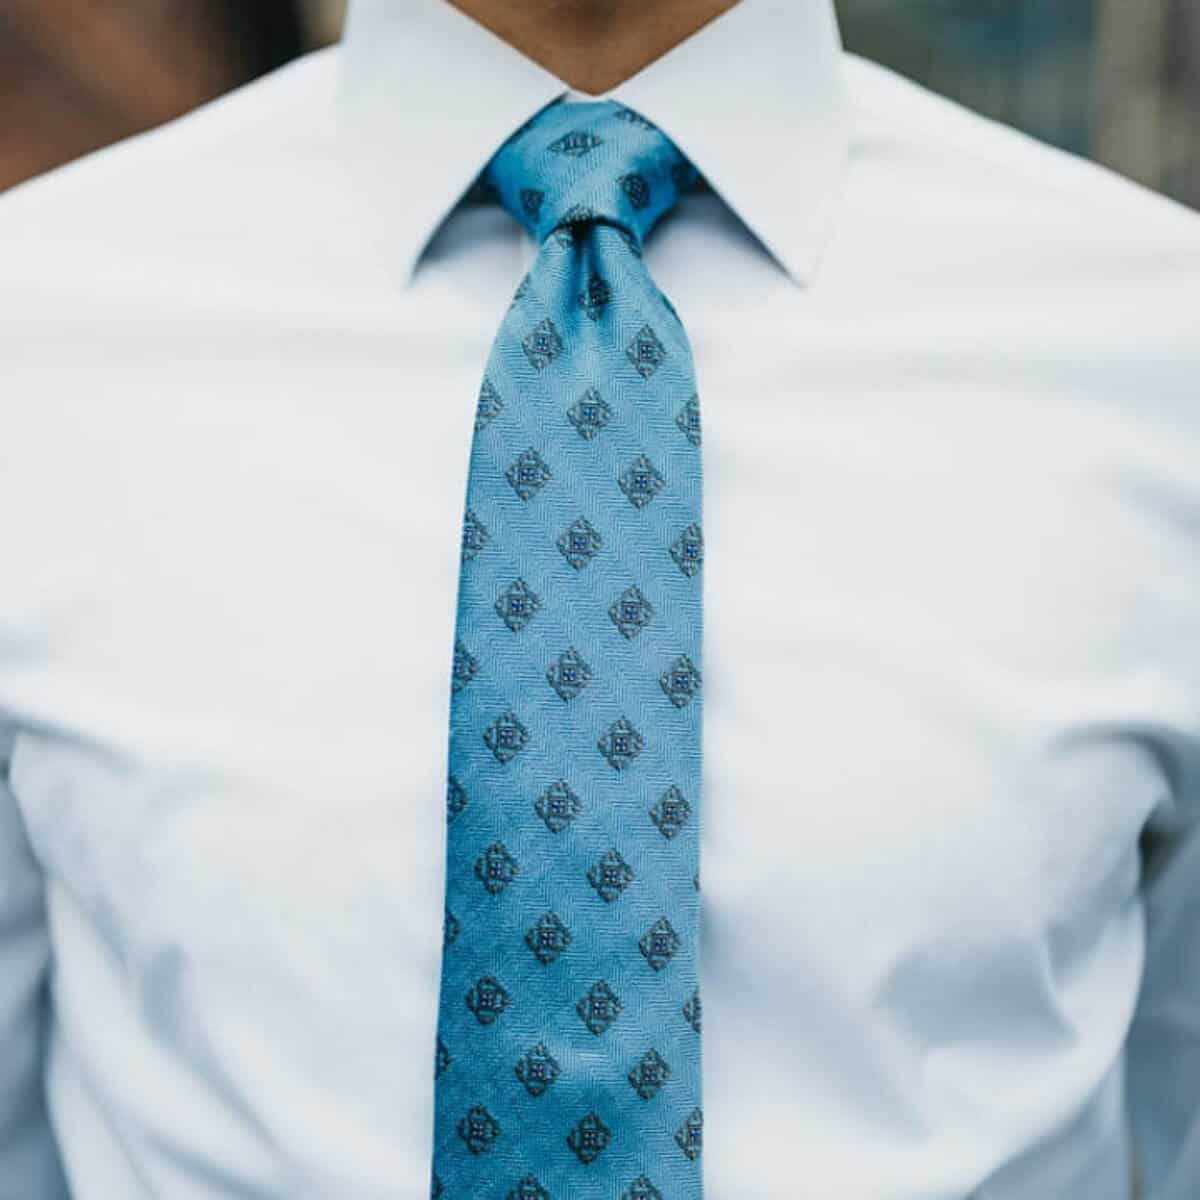 Close-up of a person's tie and white button-up shirt.